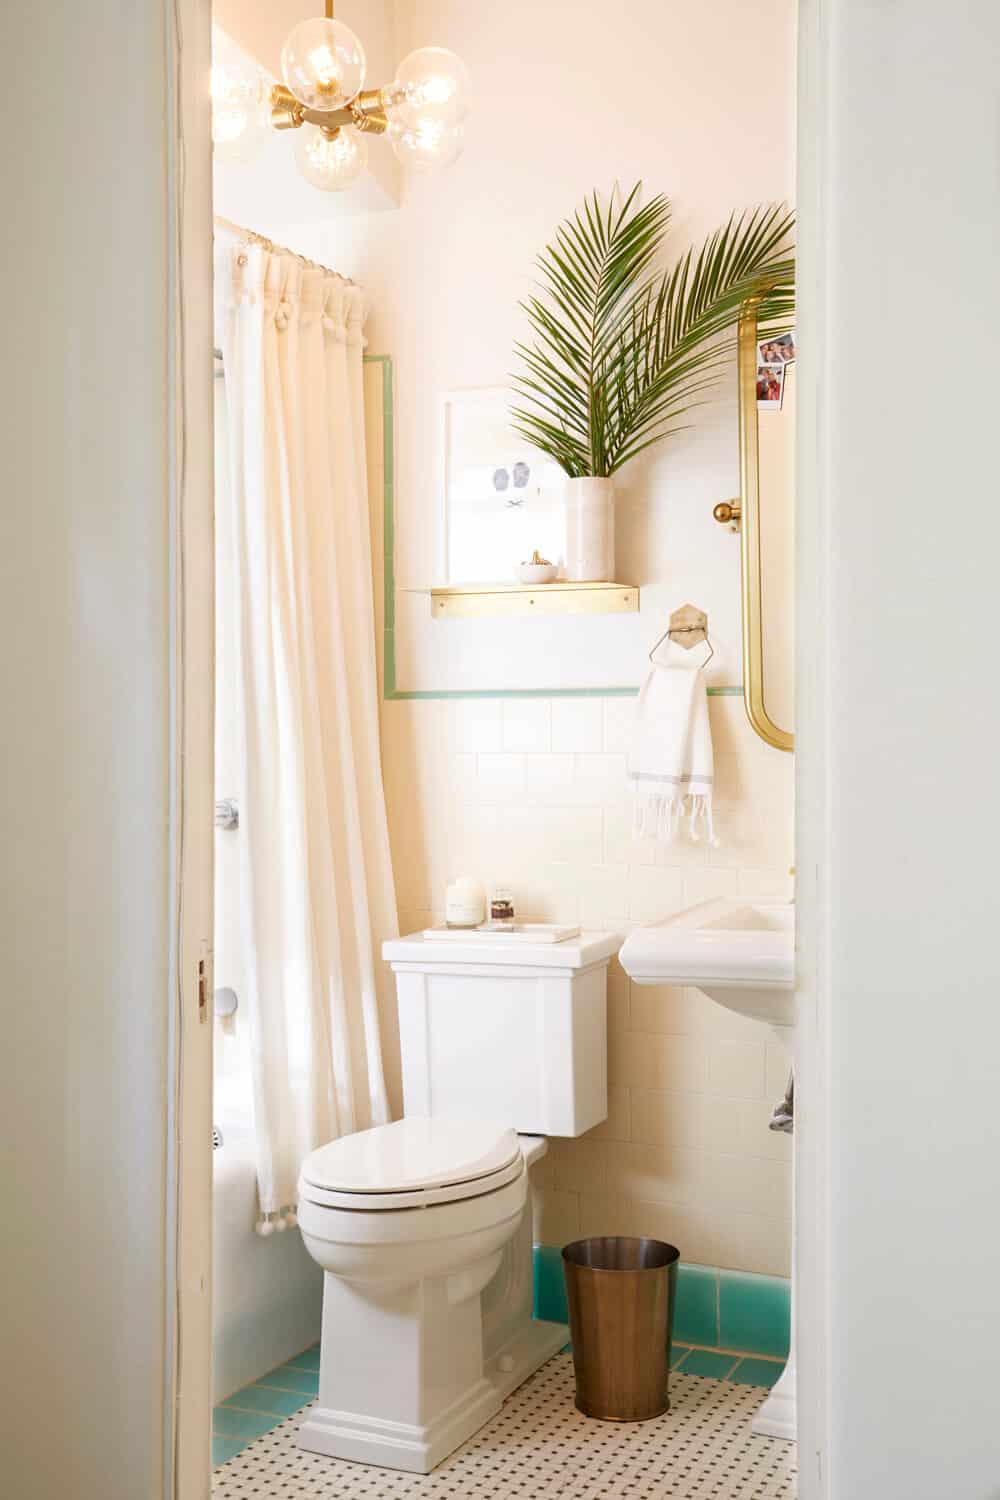 Apartment Rental Bathroom Makeover Takeover Redesign Brady Tolbert White and Turquoise _001